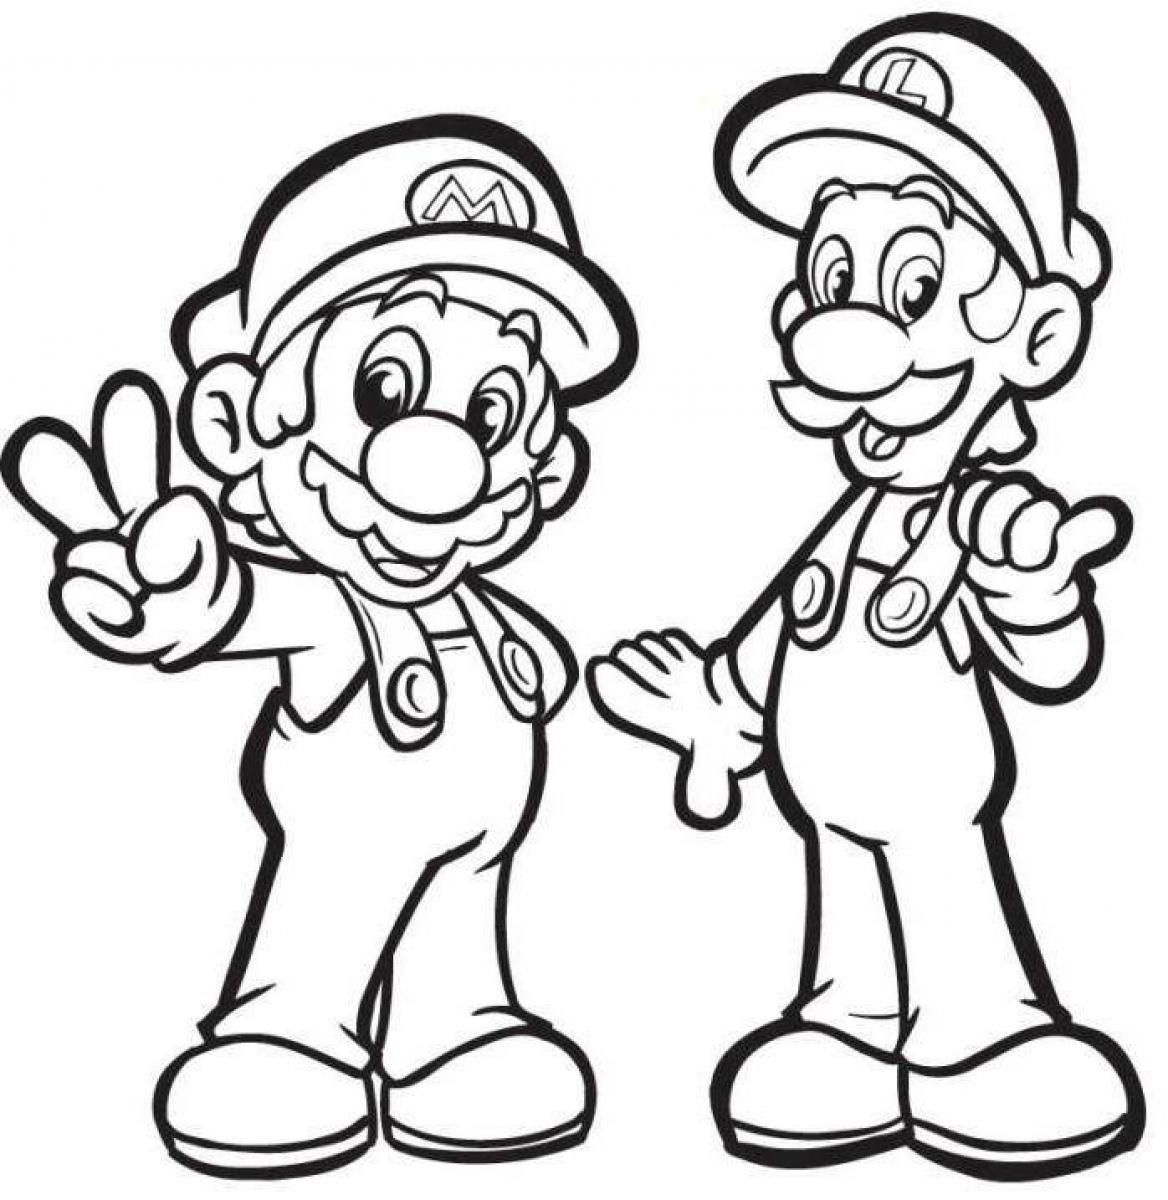 luigi coloring pages, printable luigi coloring pages, free luigi ... - Super Mario Yoshi Coloring Pages